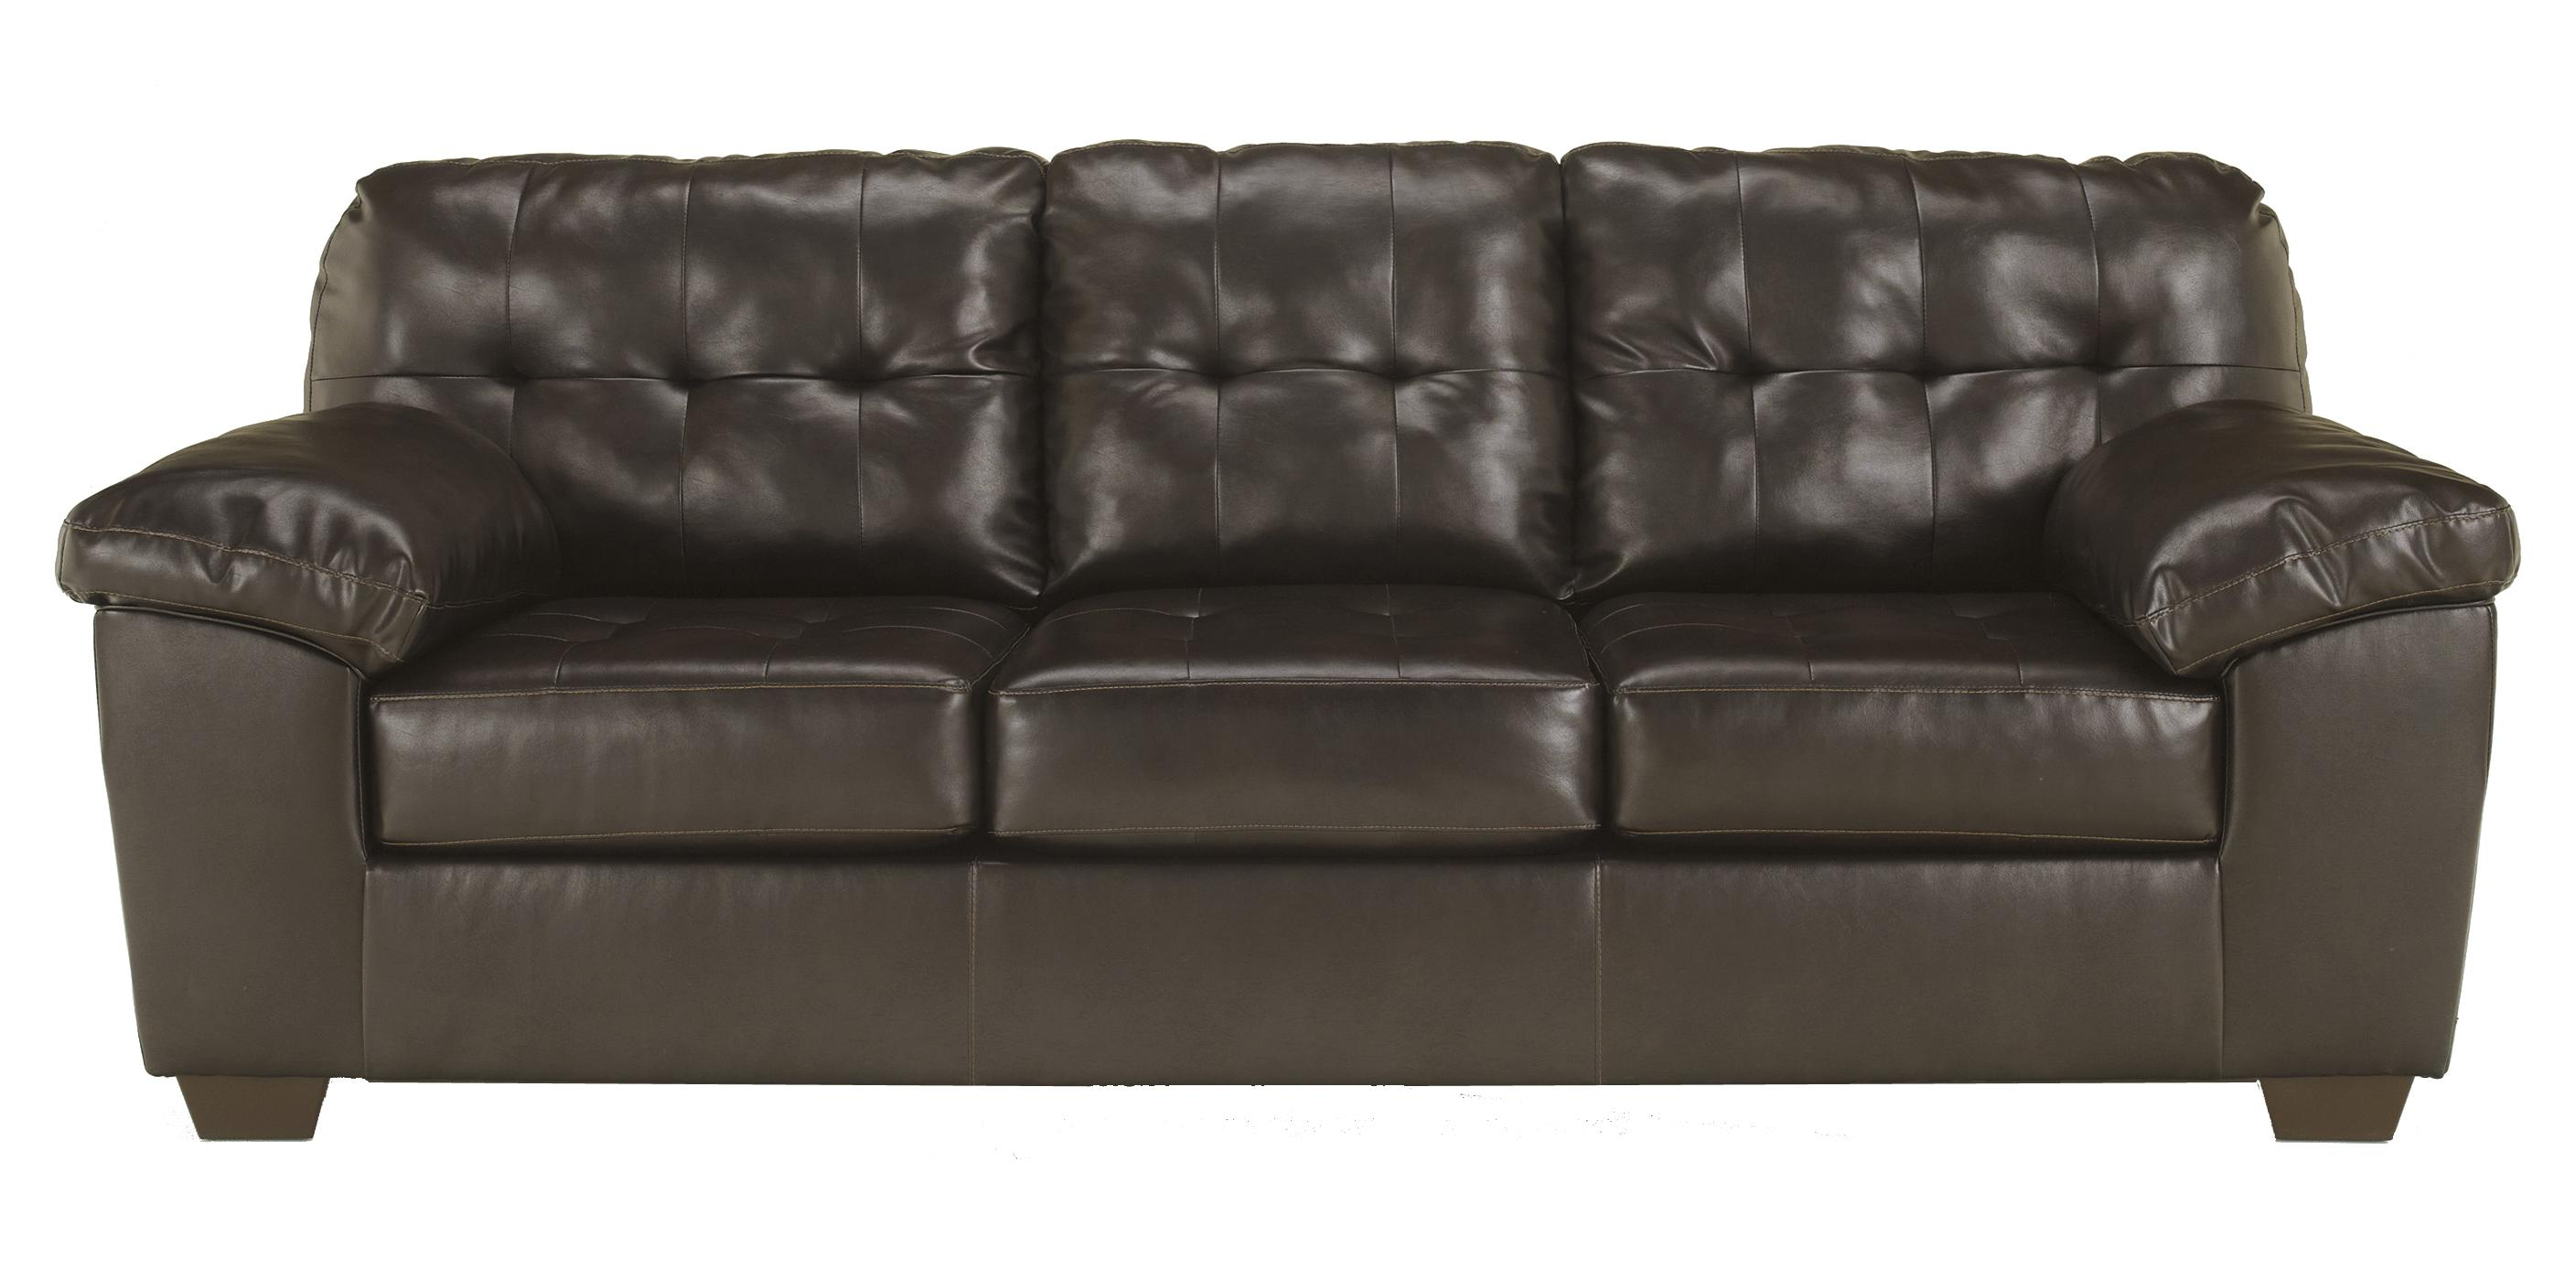 signature design by ashley alliston durablend chocolate contemporary sofa w pillow arms. Black Bedroom Furniture Sets. Home Design Ideas